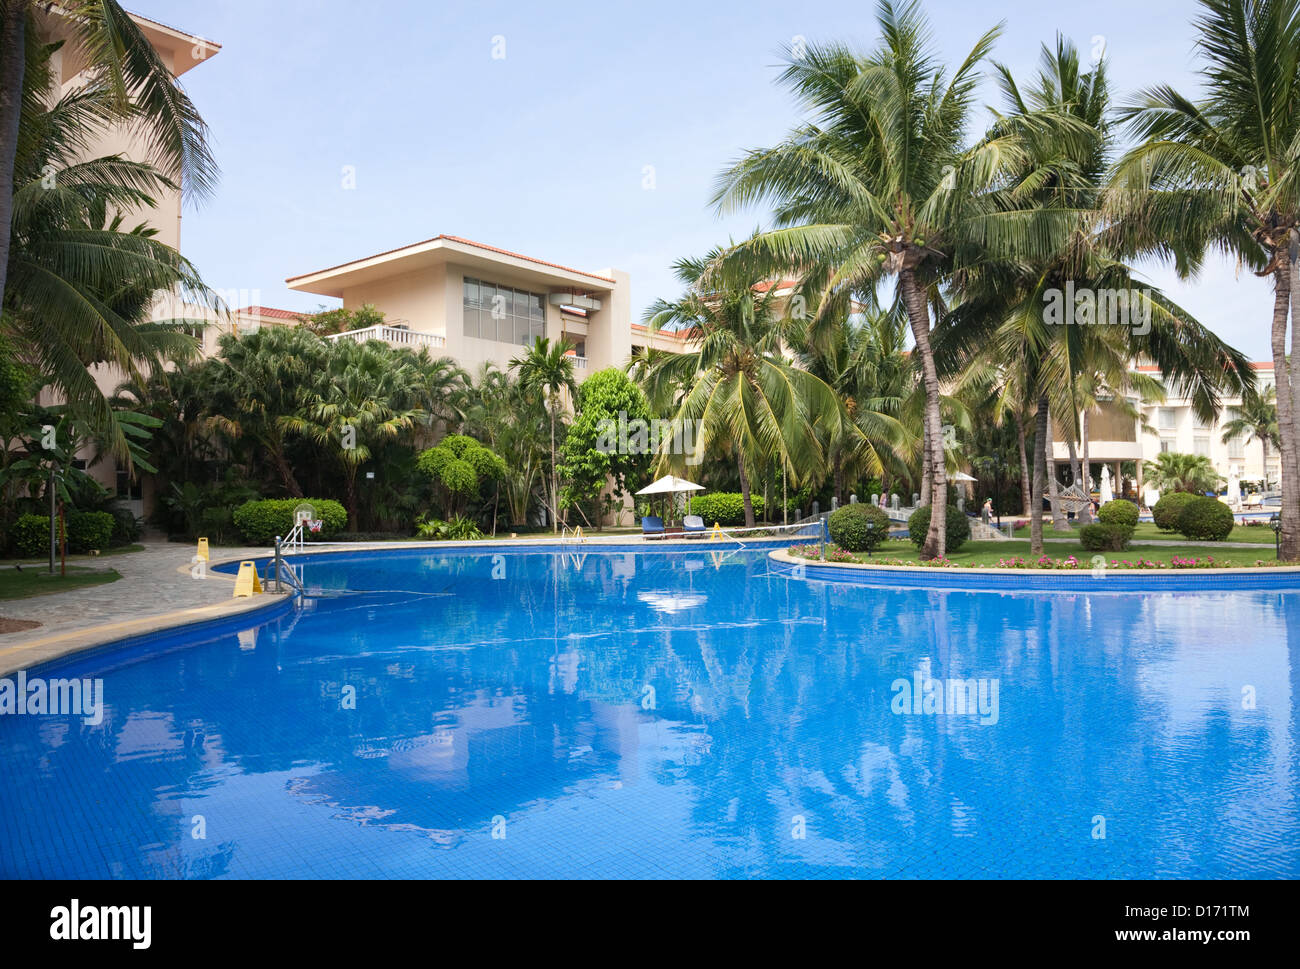 Tropical Swimming Pool With Coconut Palm Trees By The Poolside Stock Photo Royalty Free Image